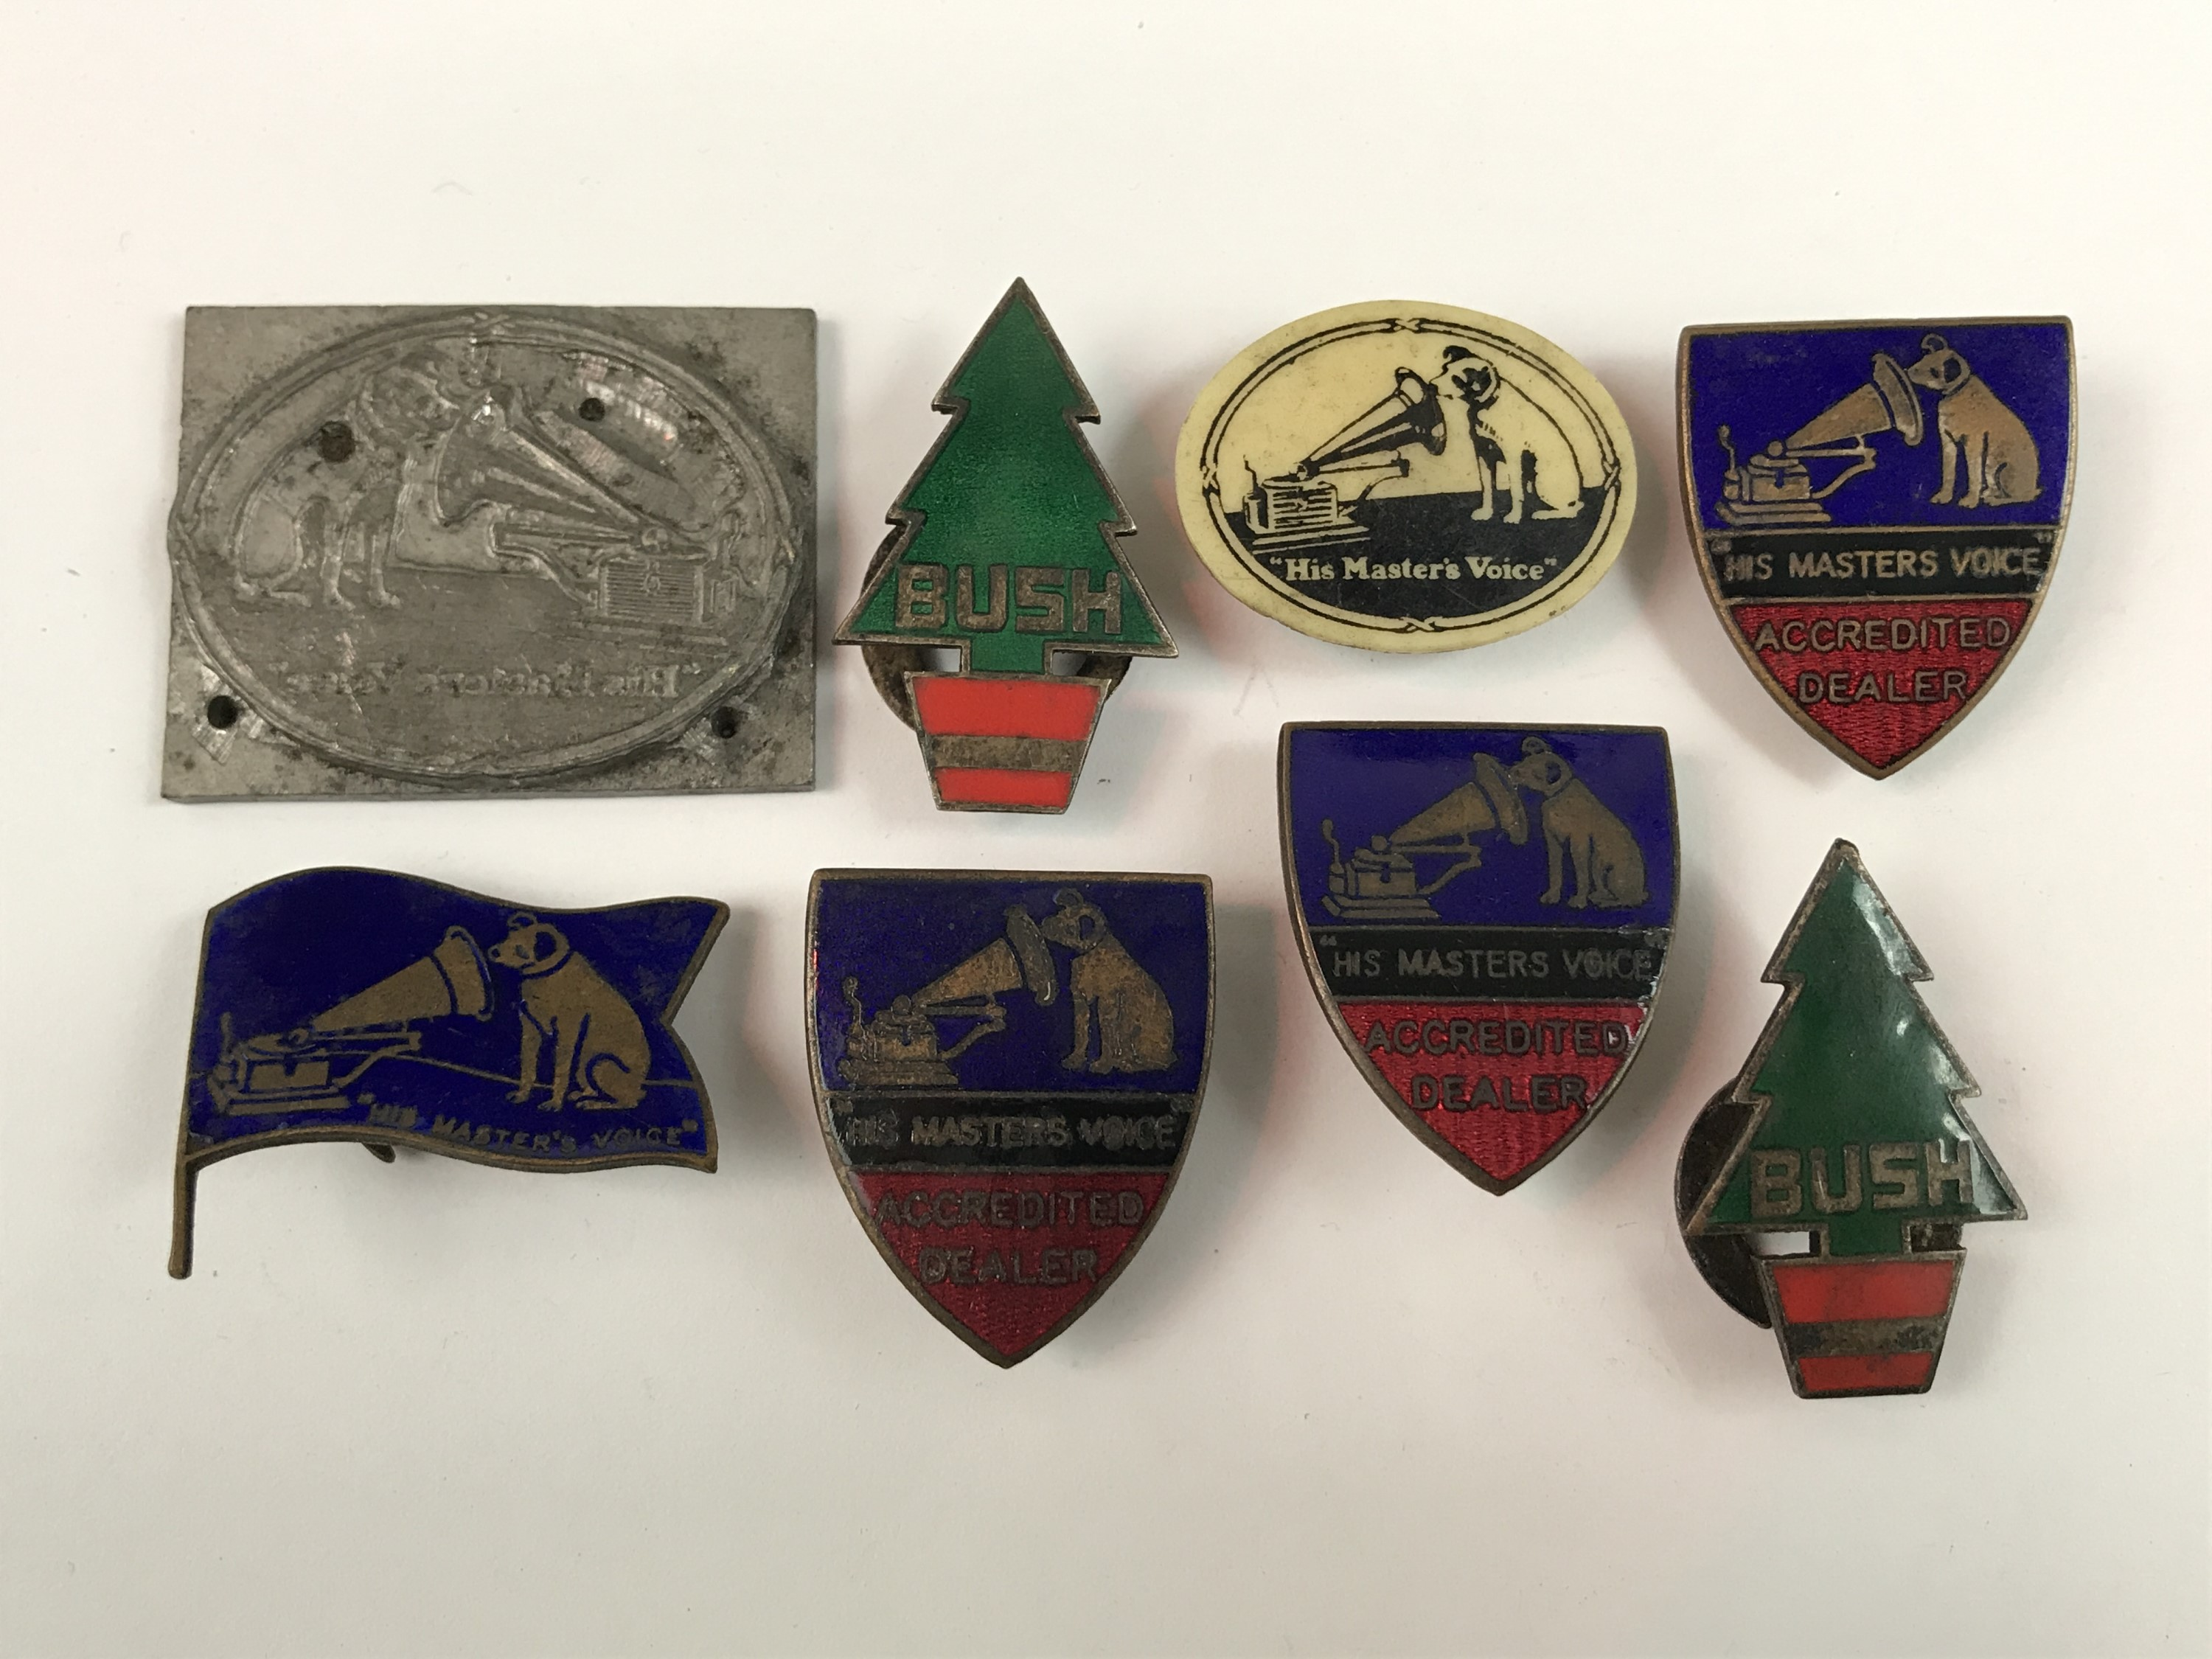 Lot 12 - [Gramophone] Six HMV and Bush 'Accredited Dealer' and promotional enamelled lapel badges, on other